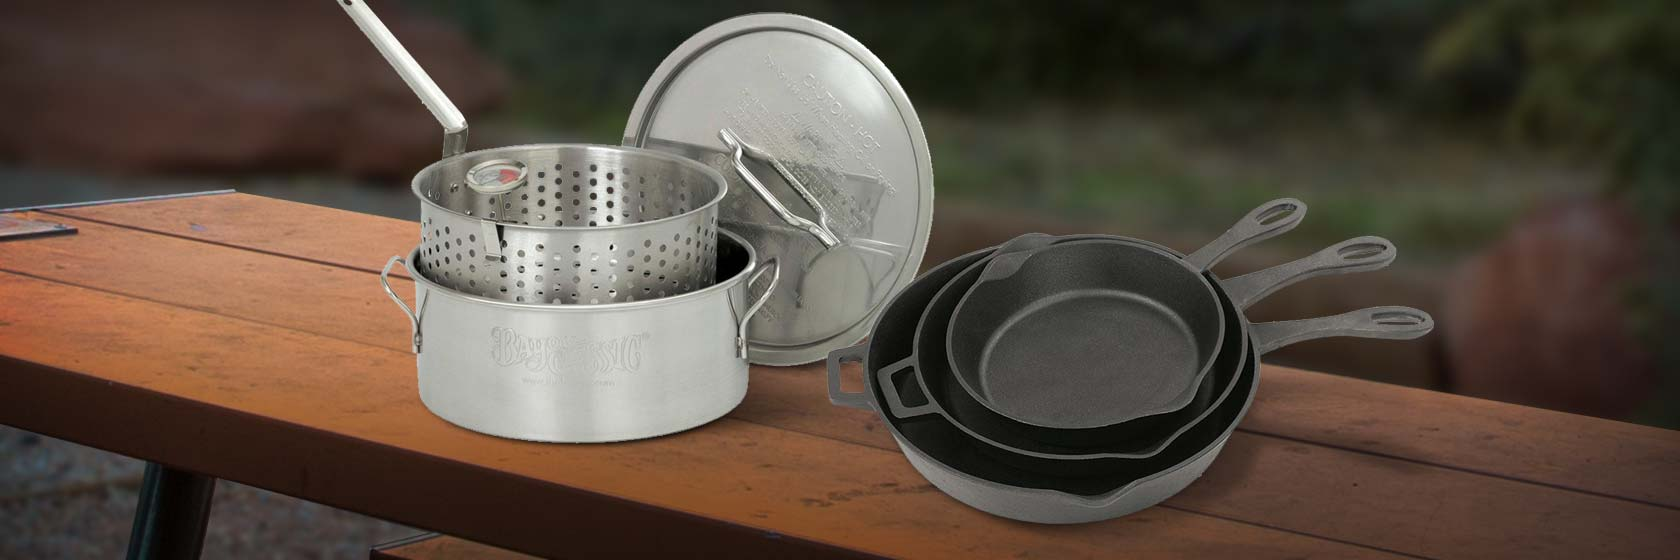 Save BIG on Outdoor Cooking Must-Haves